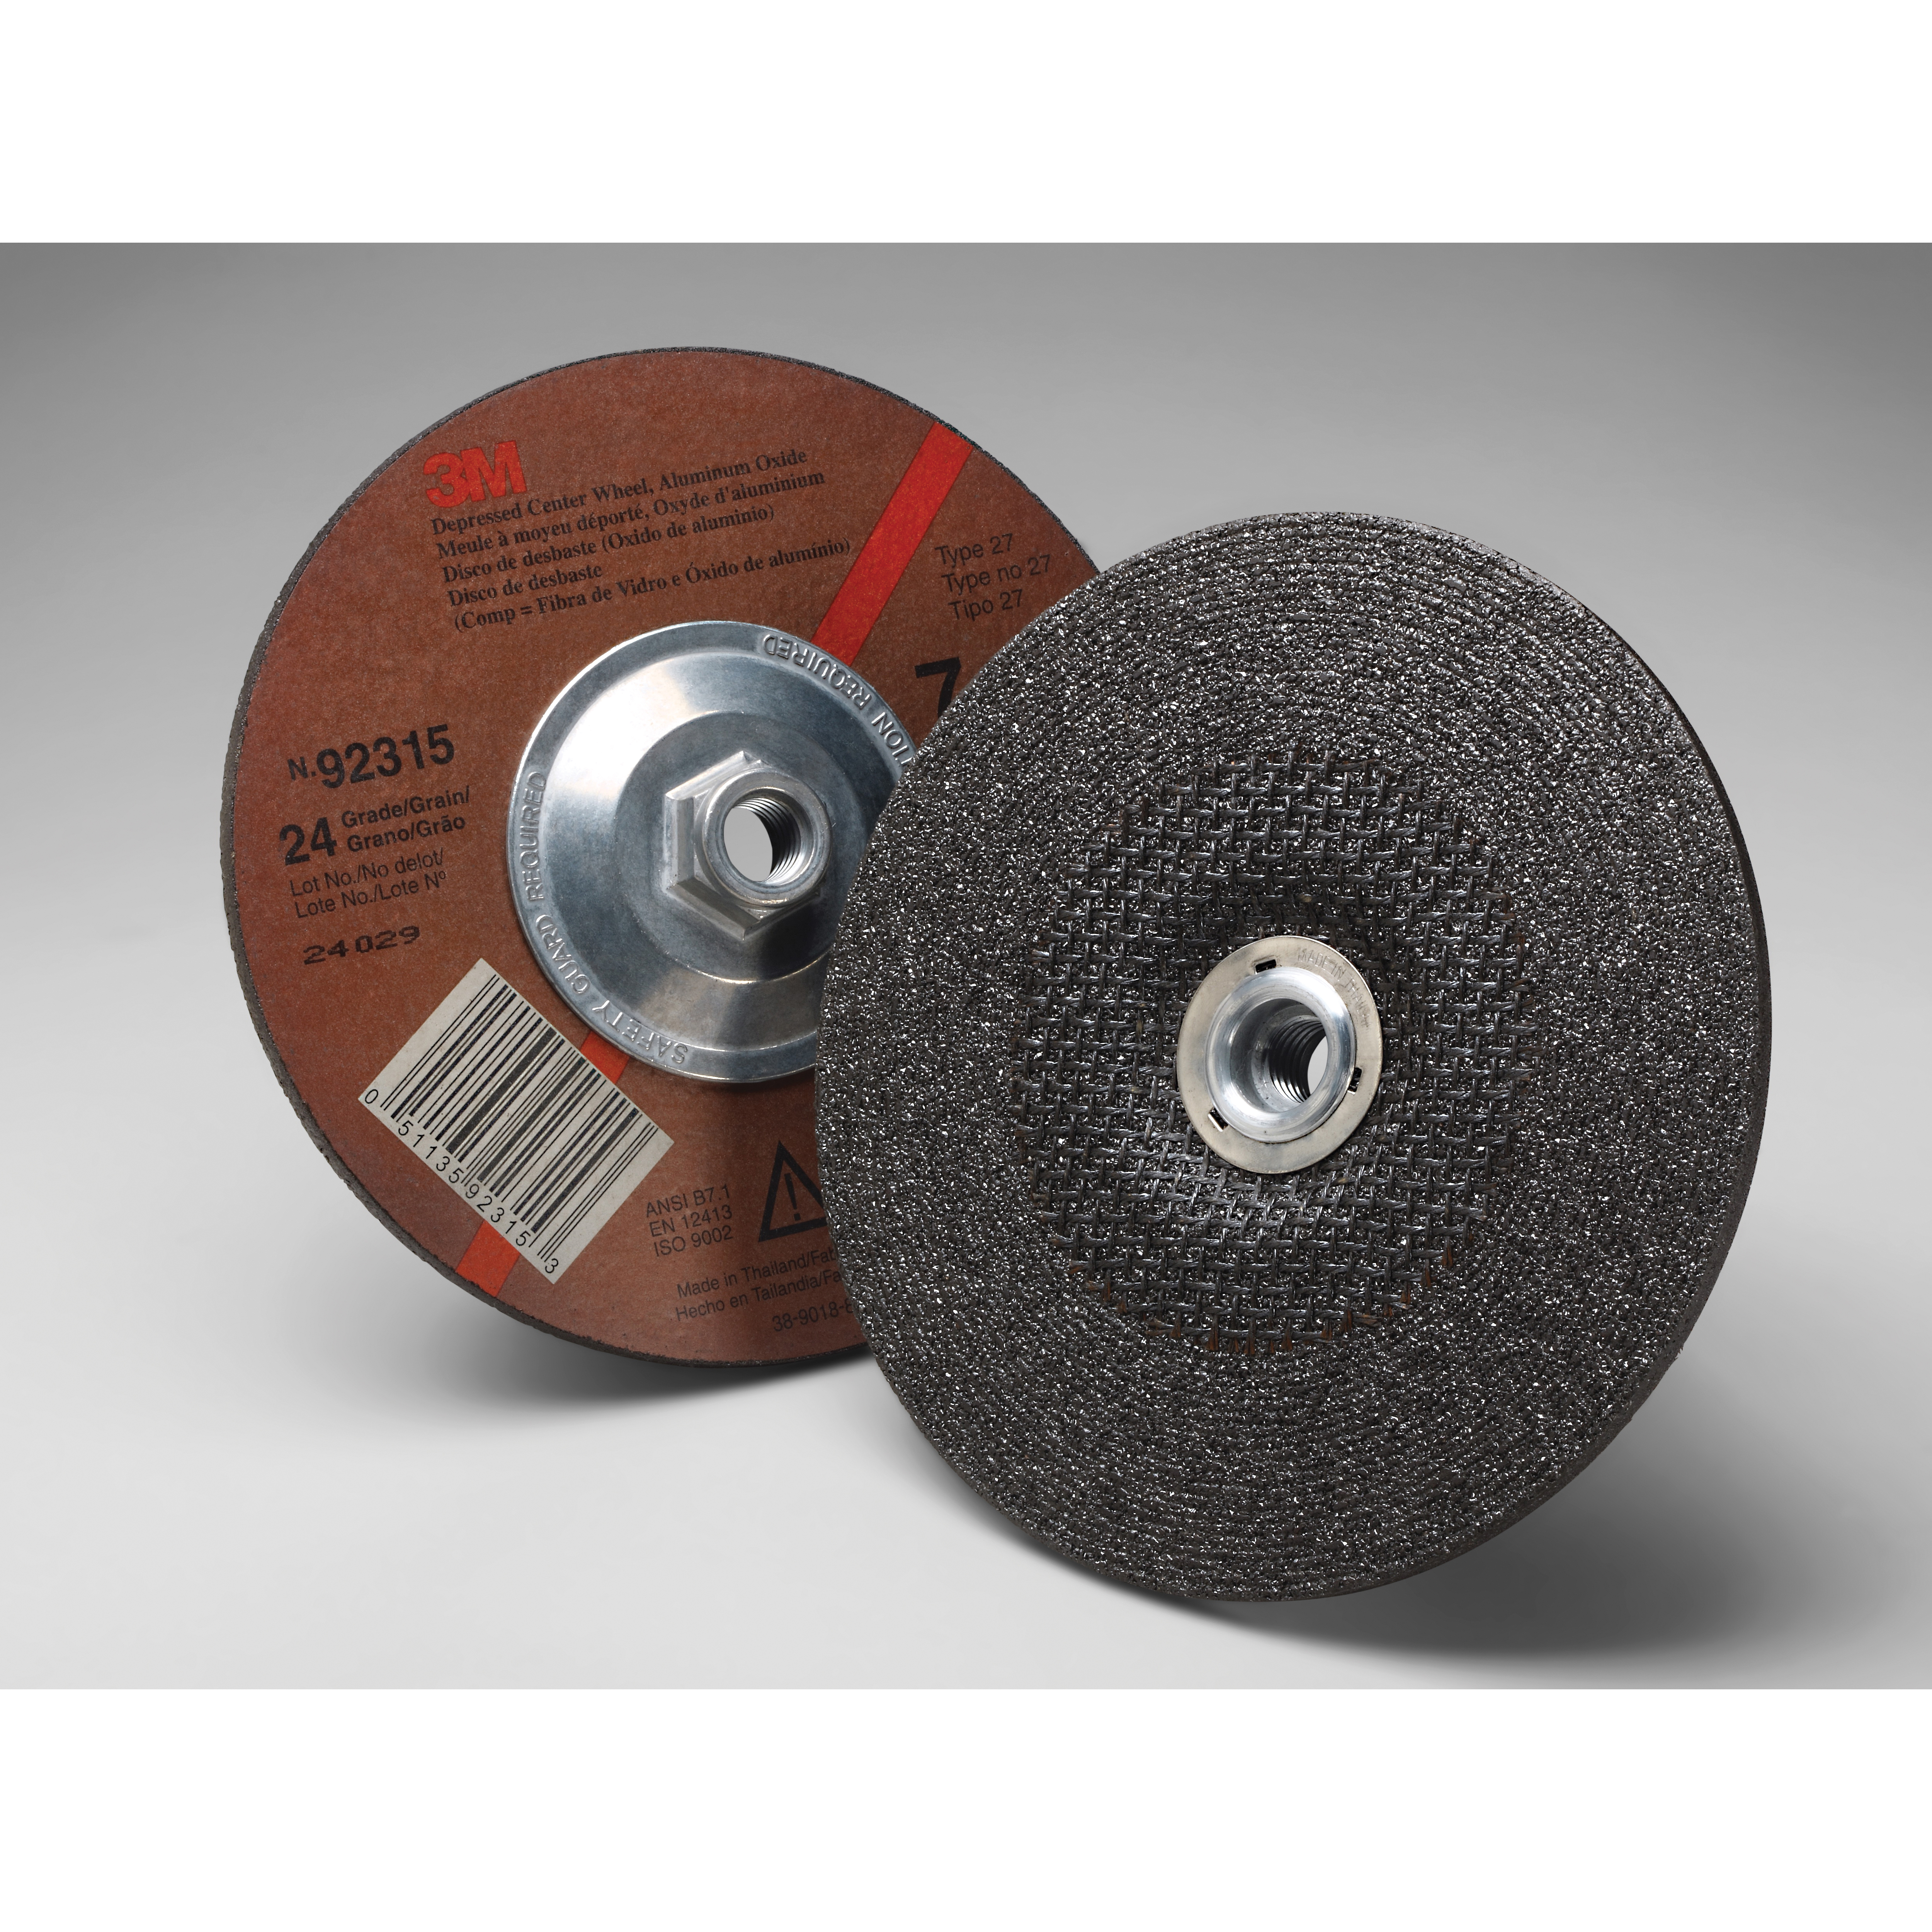 3M™ 051135-92315 General Purpose Depressed Center Wheel, 7 in Dia x 1/4 in THK, 24 Grit, Aluminum Oxide Abrasive